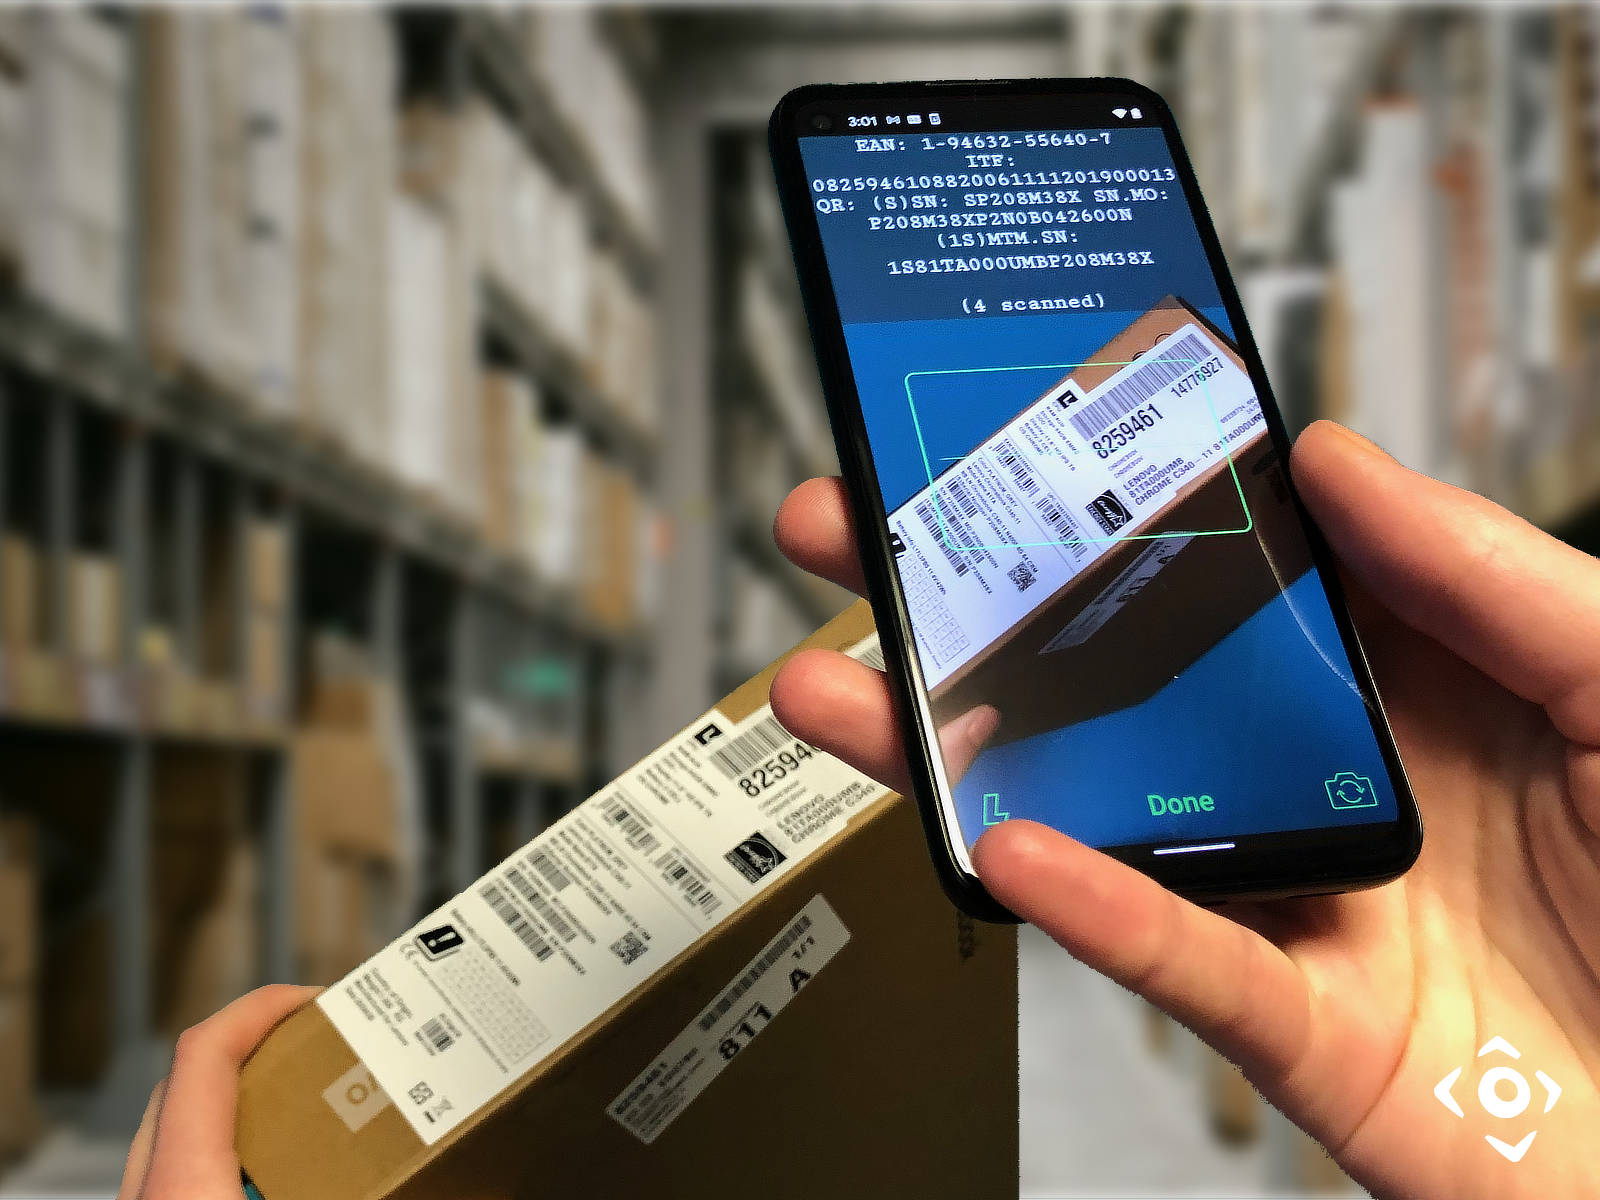 Barcode Scanner Library and SDK for iOS and Android - Vision Smarts